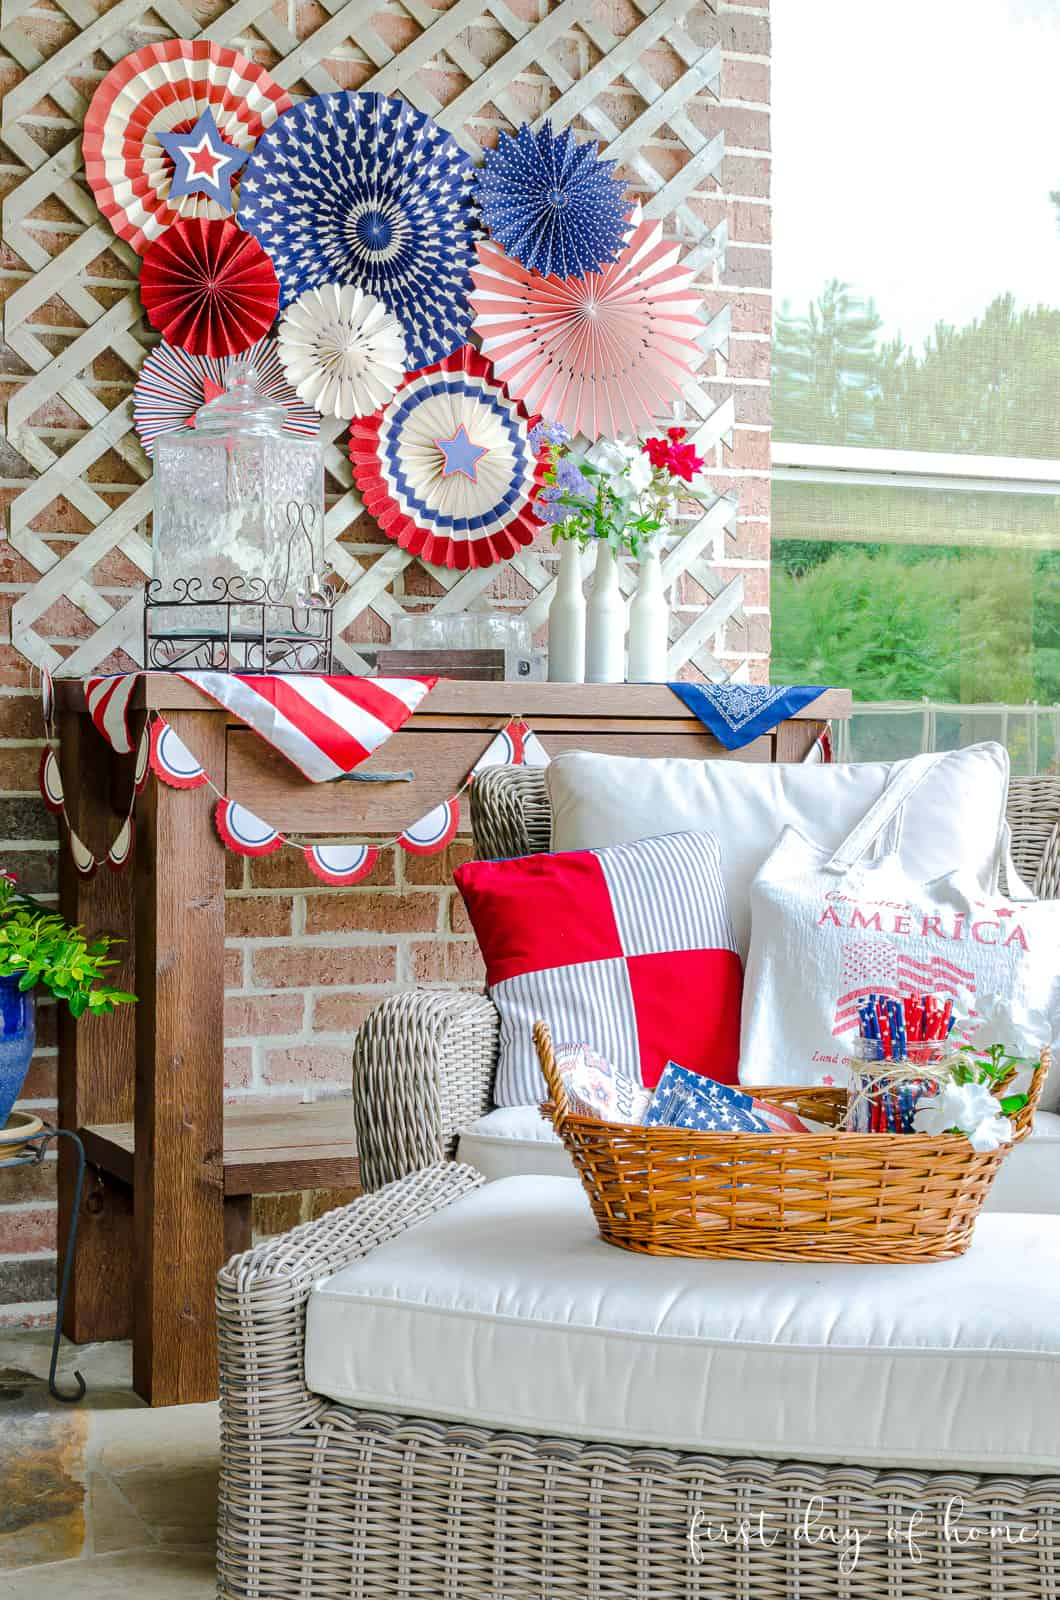 Patio with 4th of July patriotic decor